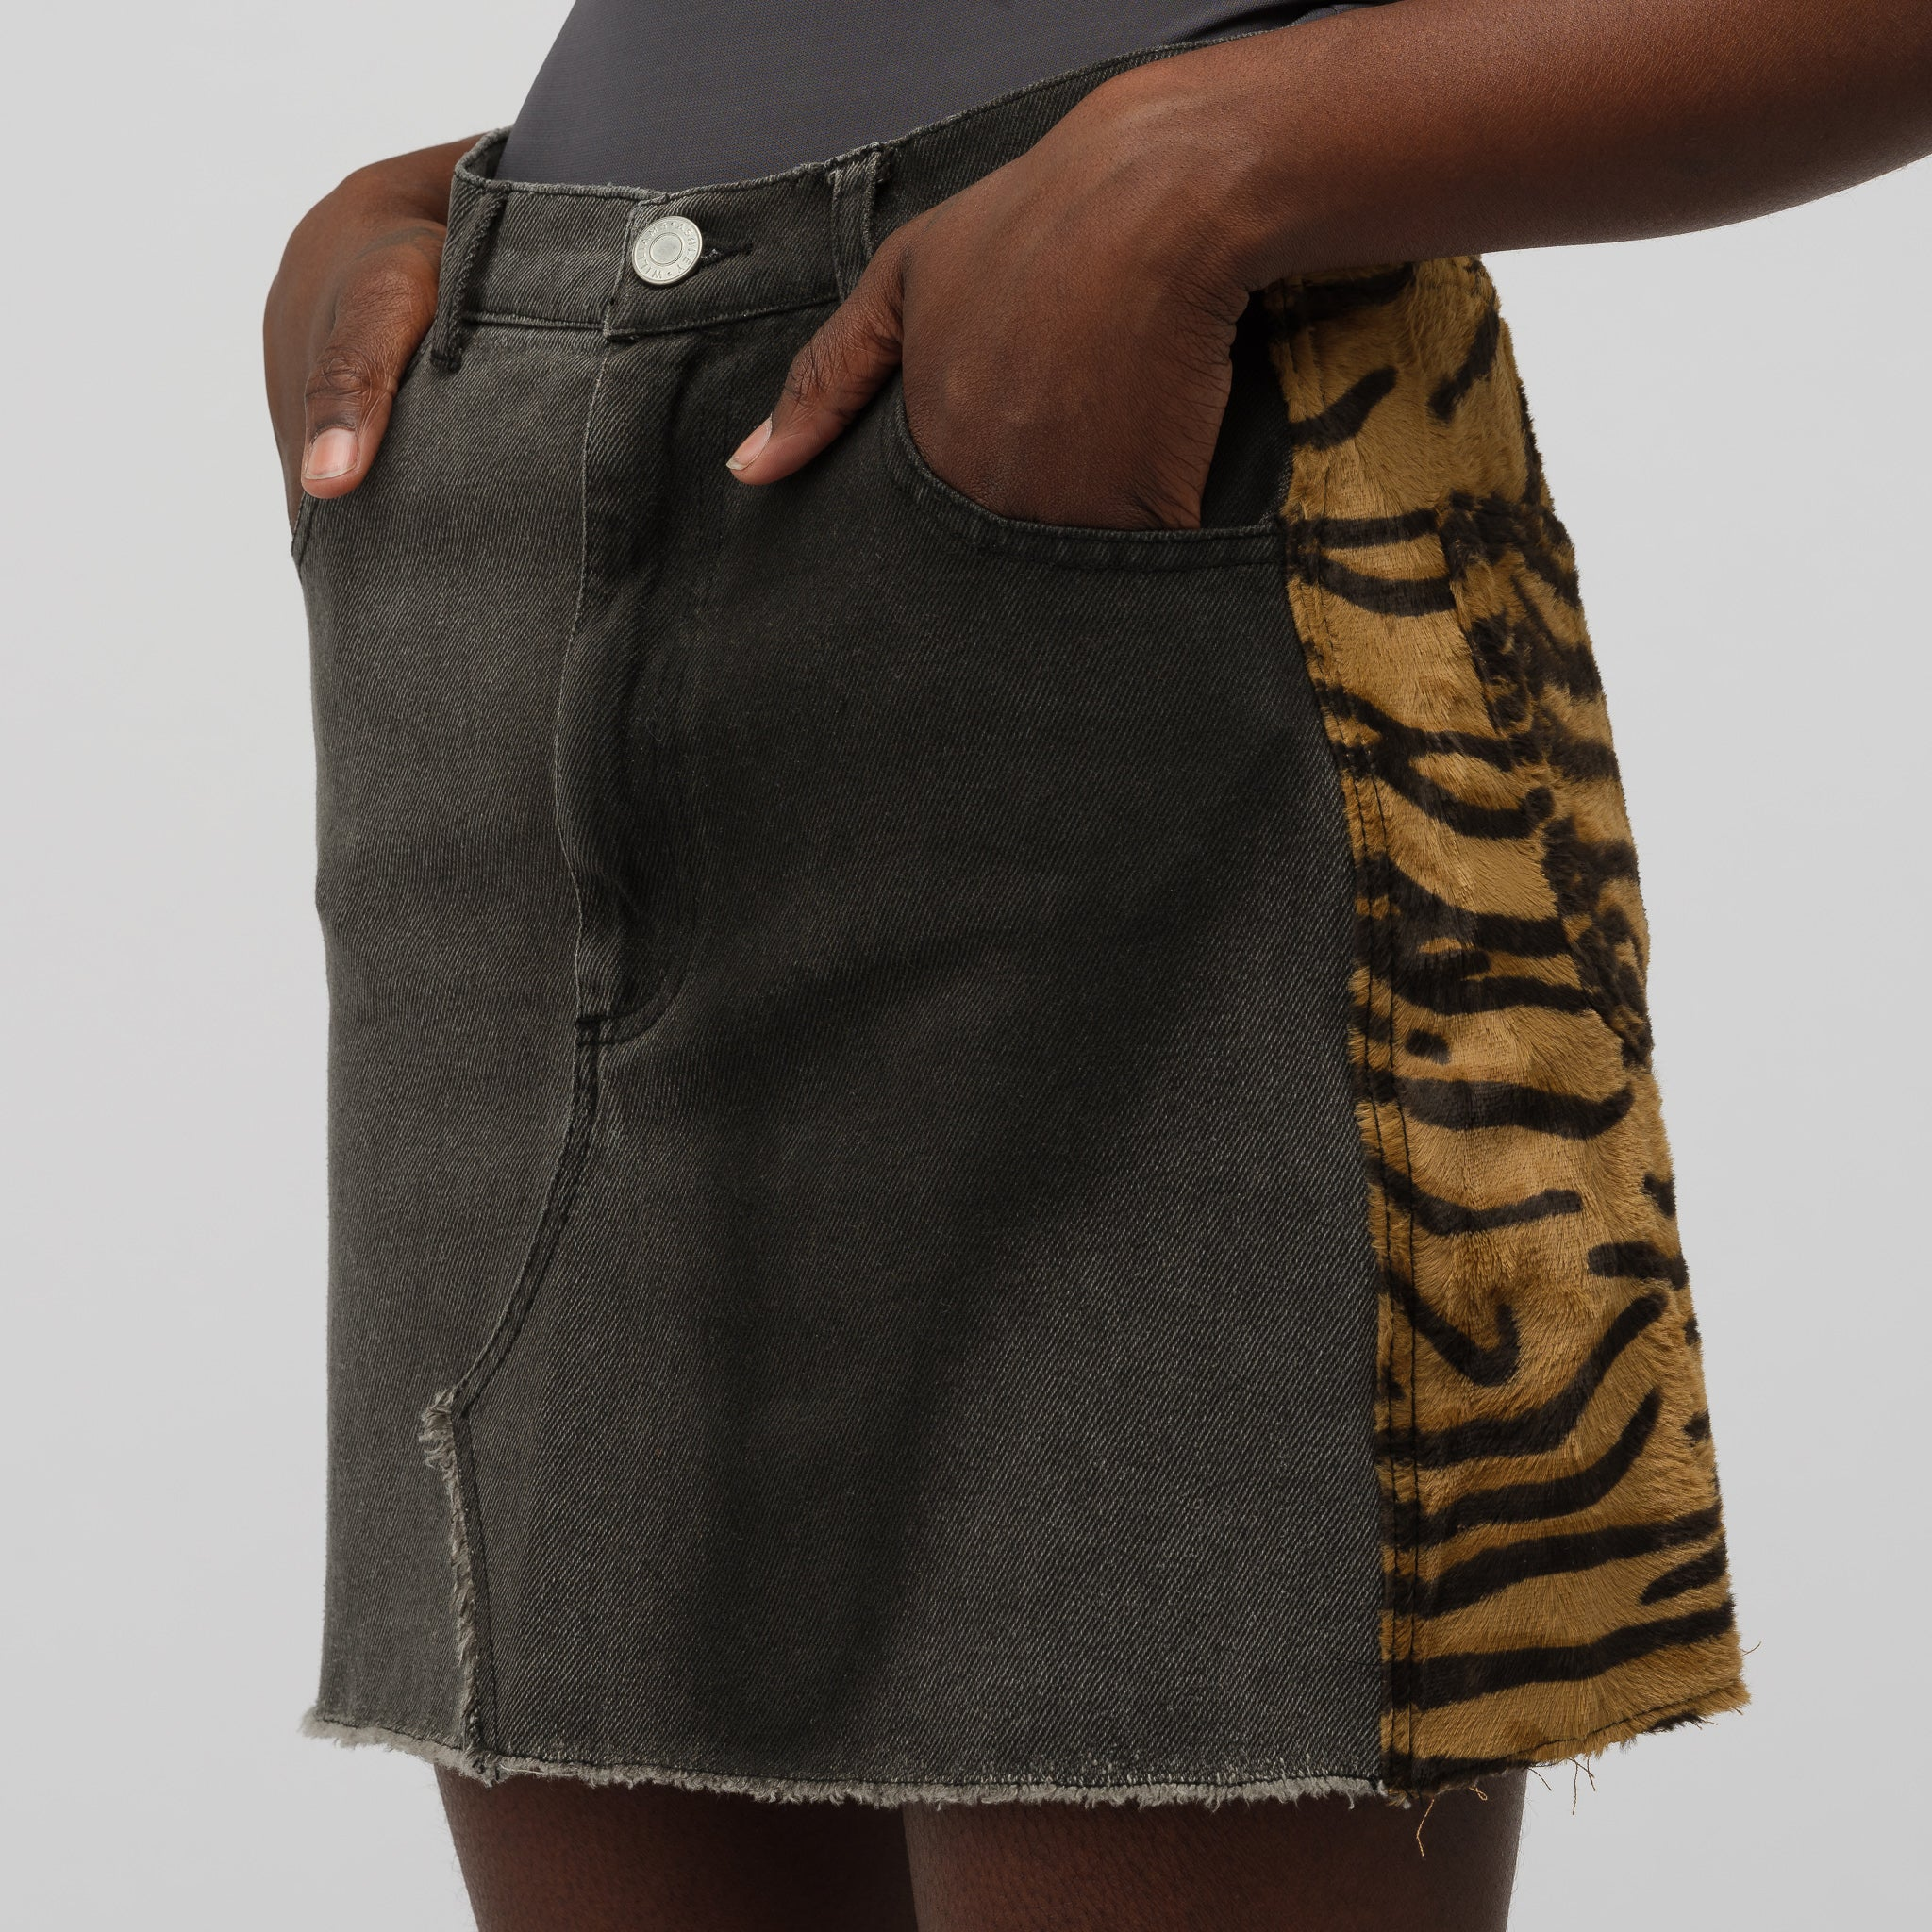 Stephanie Skirt in Grey/Tiger